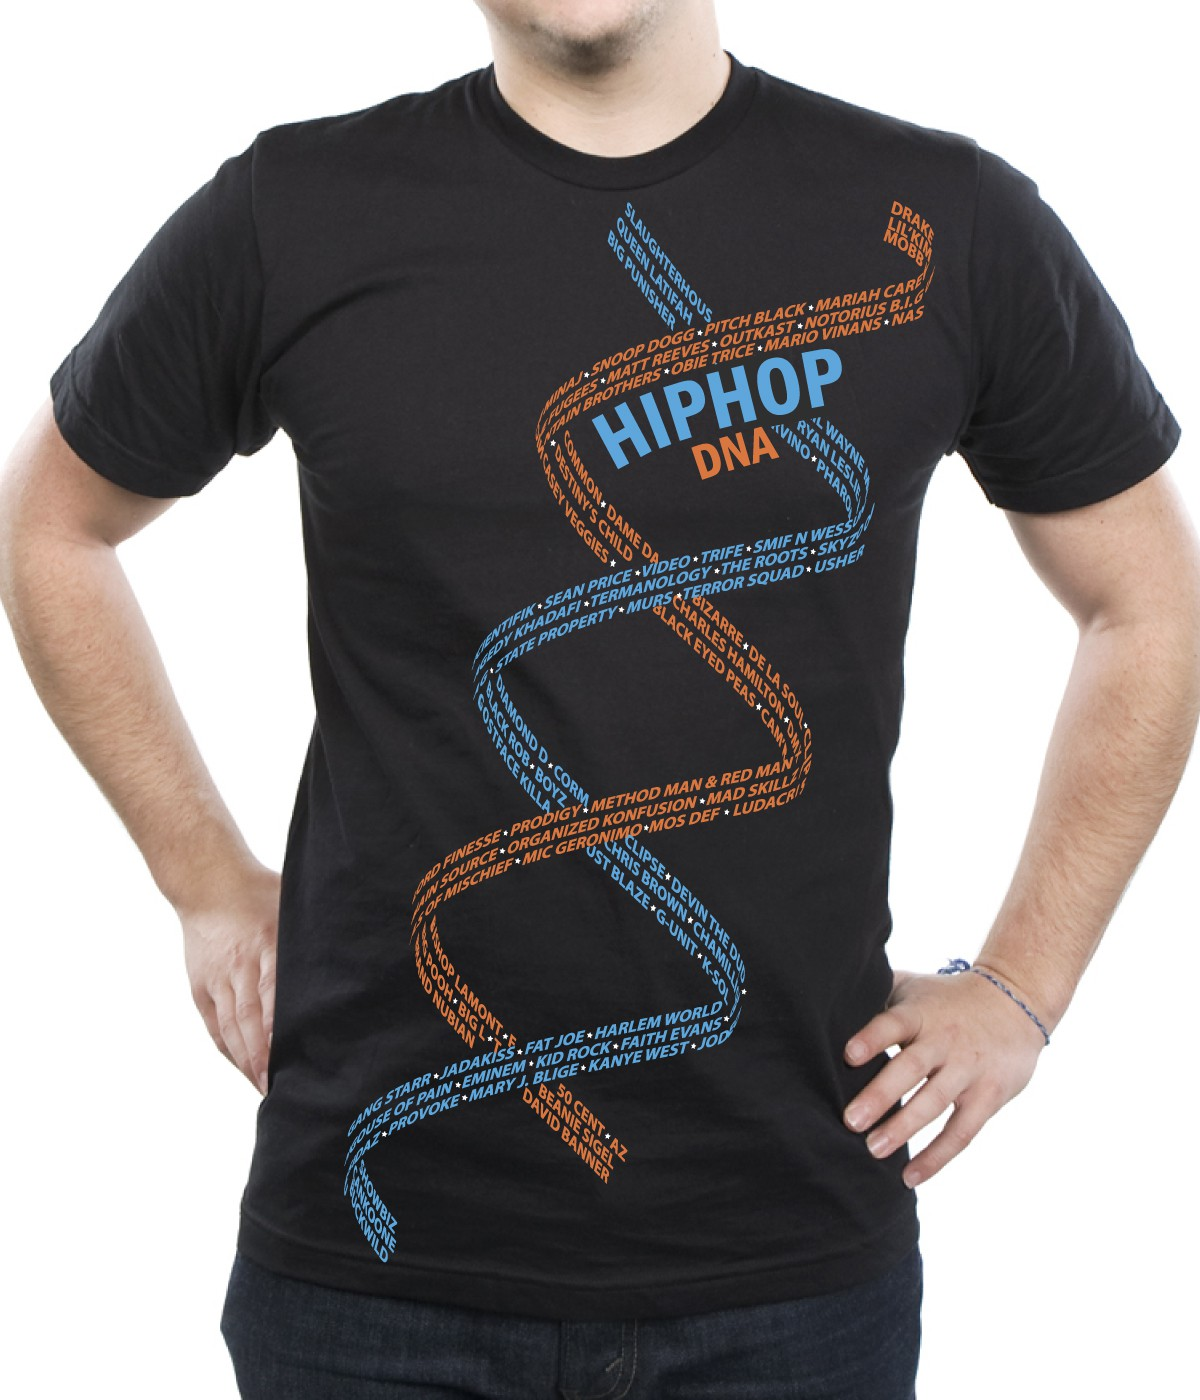 Help HiphopDNA with a new t-shirt design